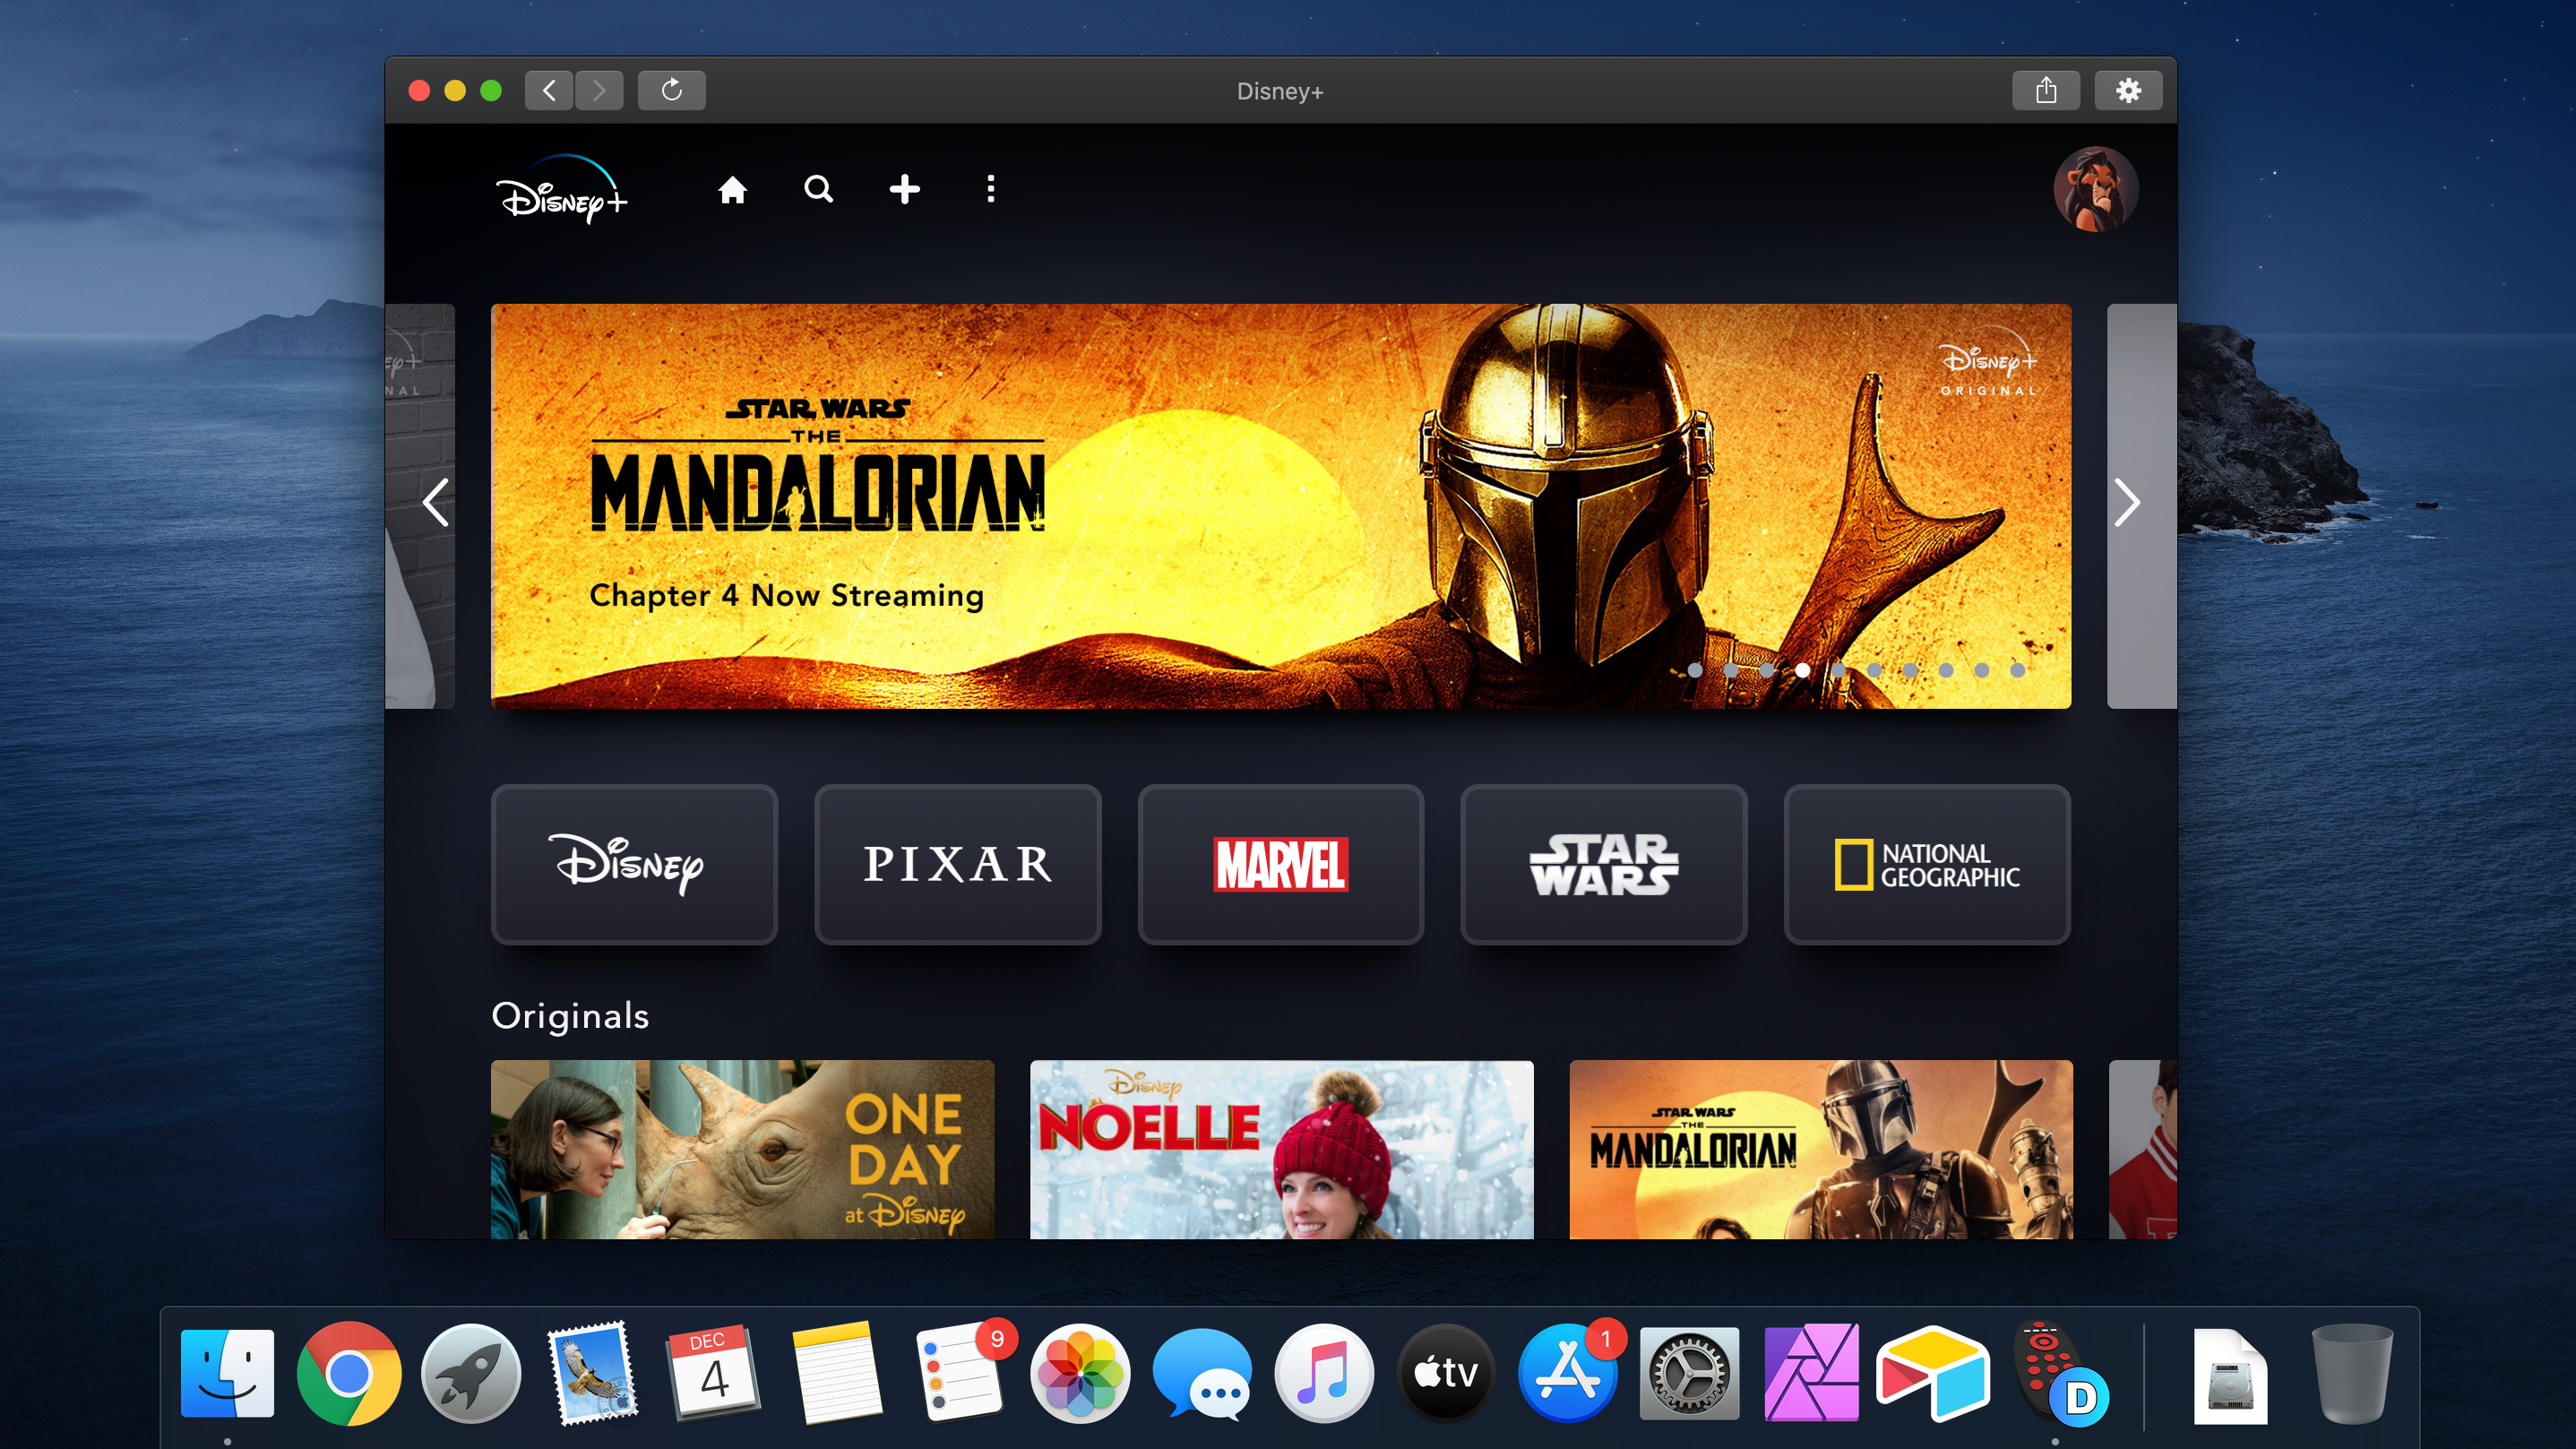 This Free Disney+ Mac App Resumes Your Shows As Soon As You Launch It